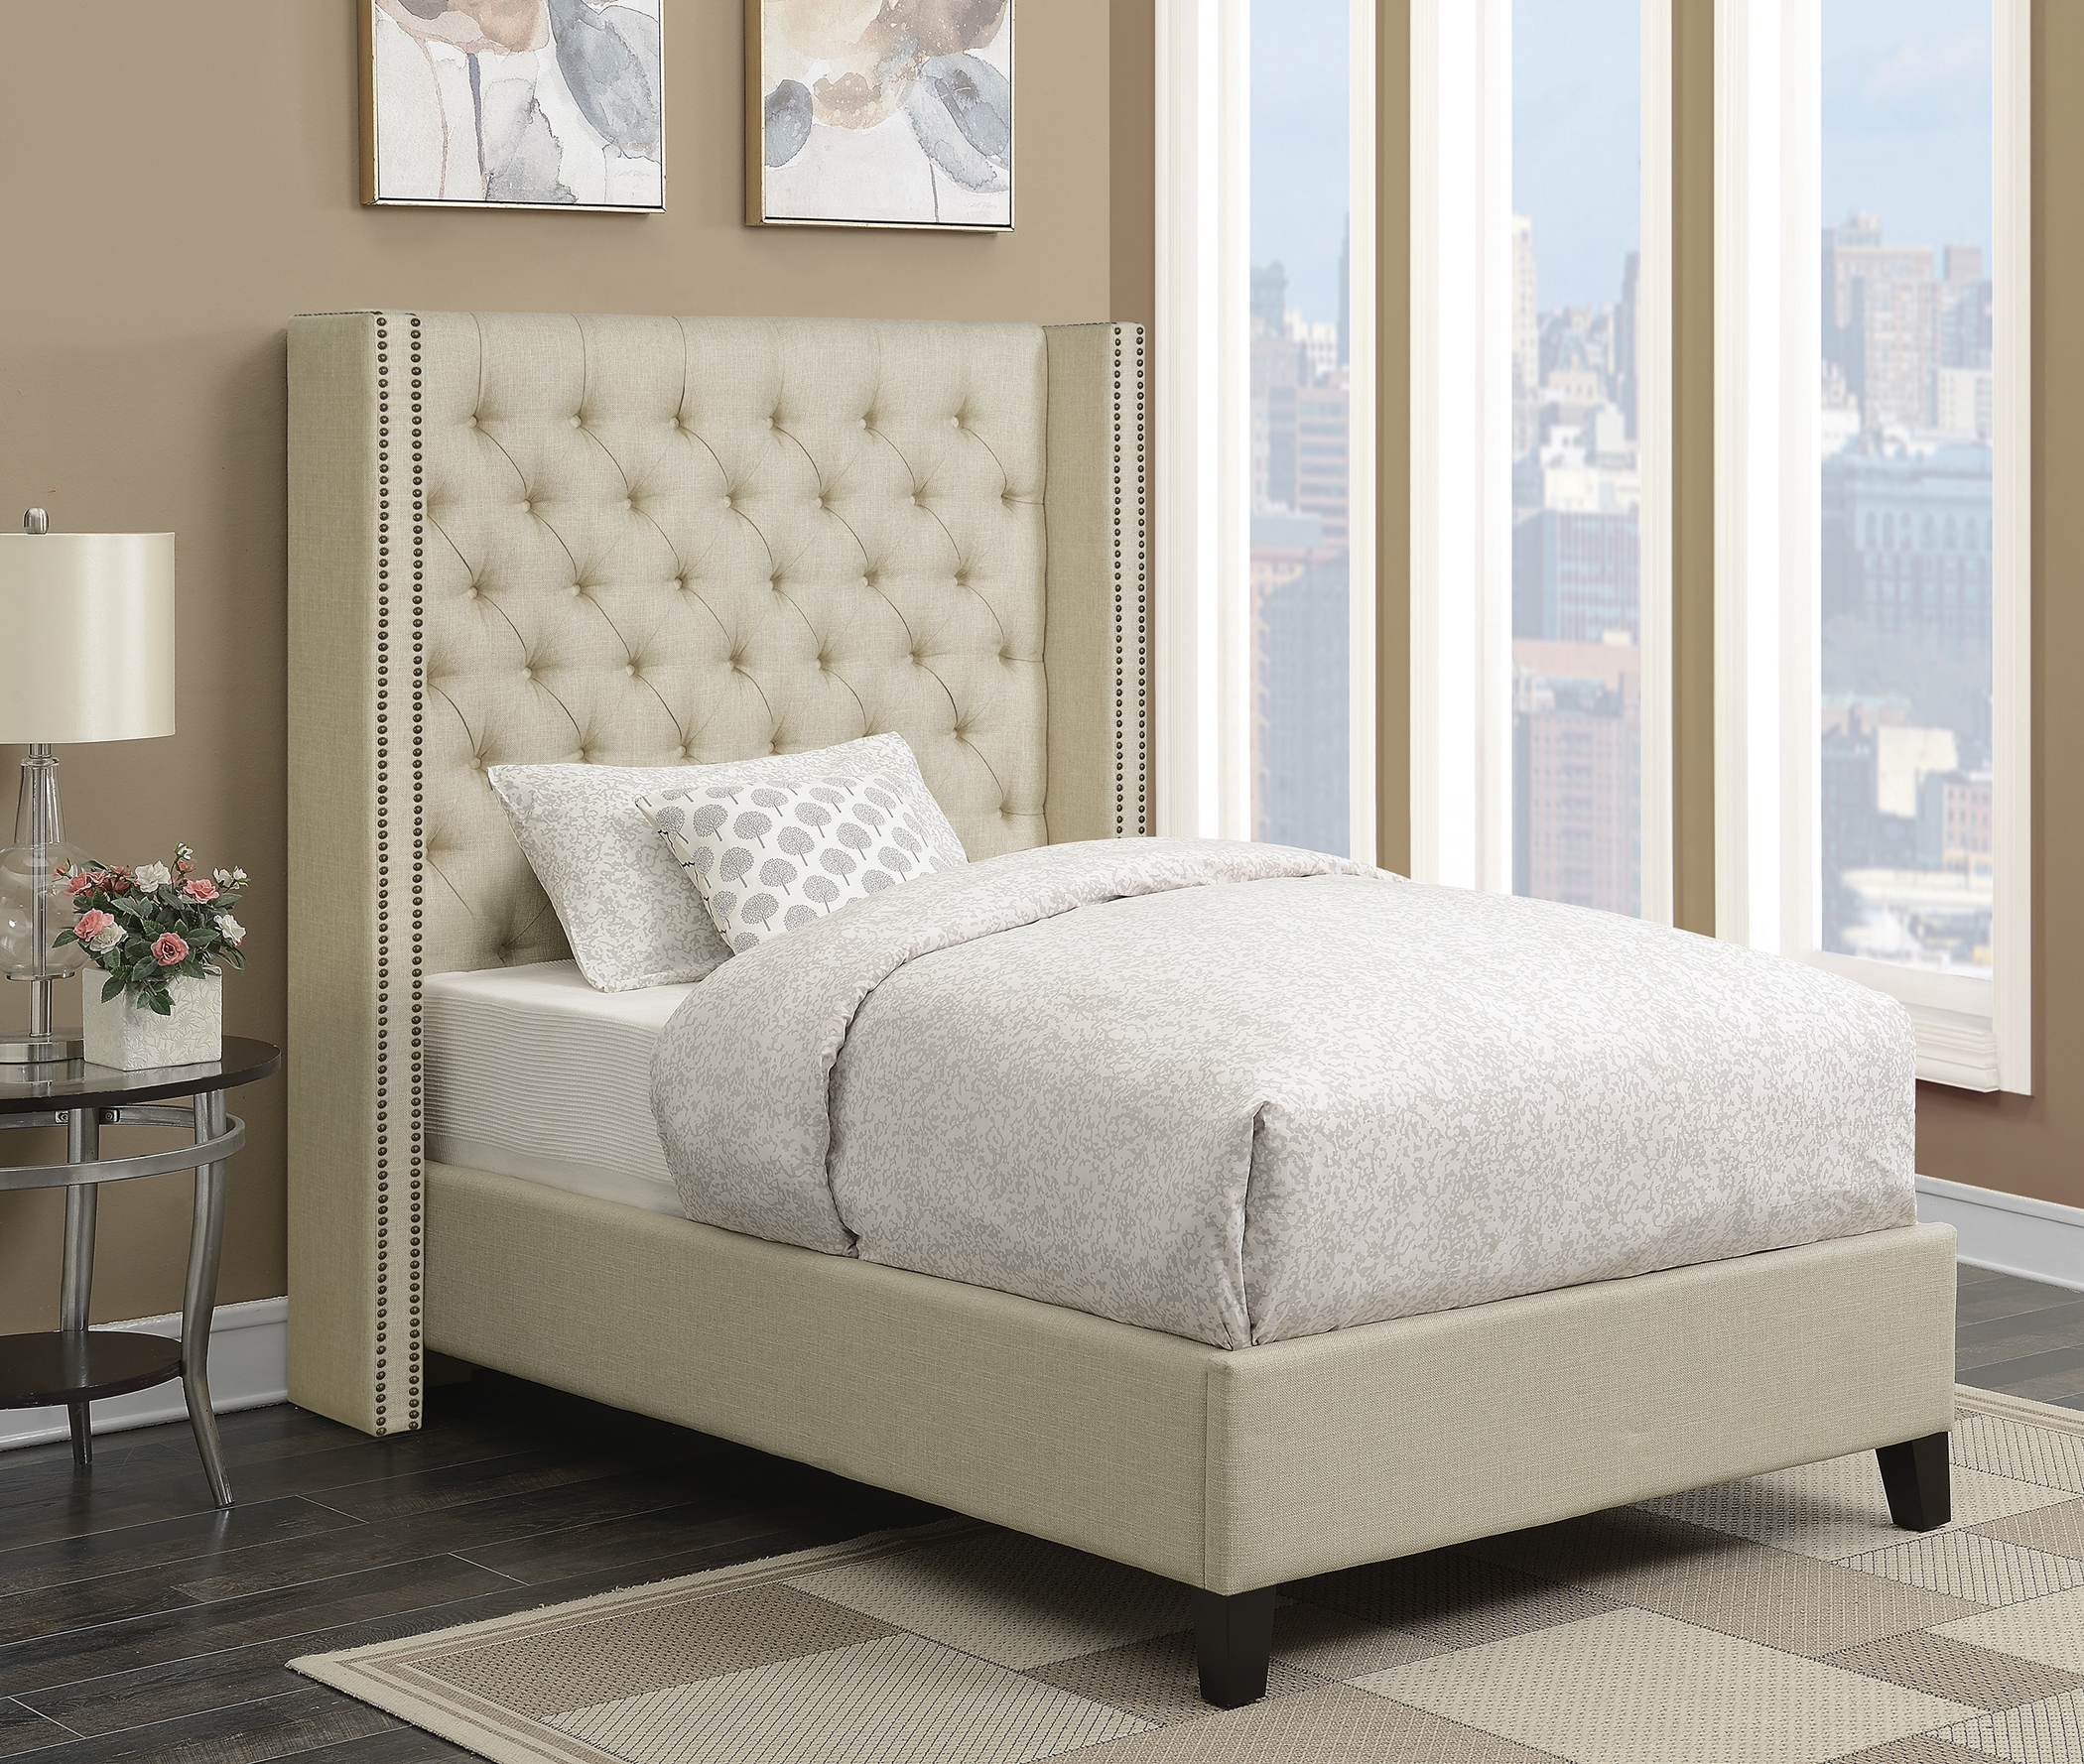 Benicia Beige Upholstered Twin Headboard